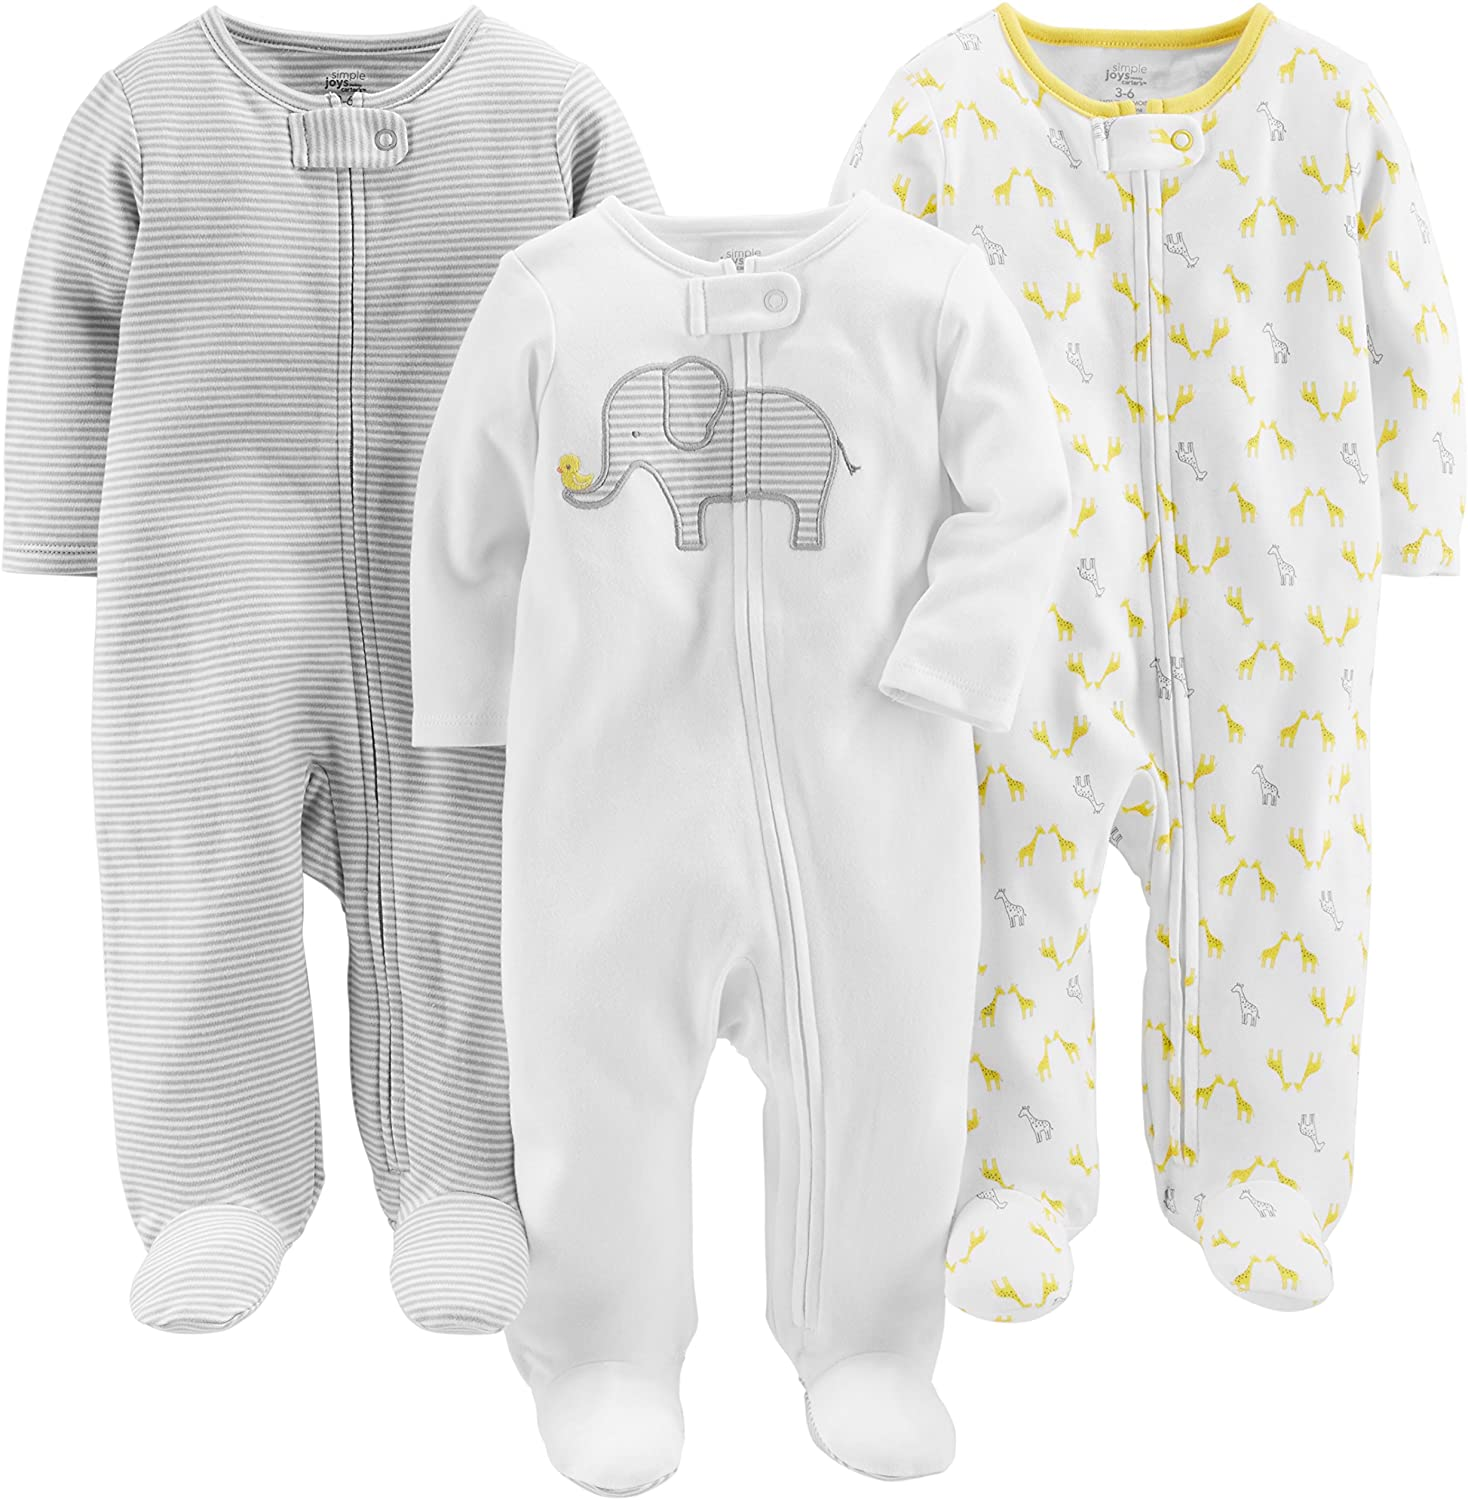 Simple Joys by Carter's Baby 3-Pack Cotton Footed Sleep and Play